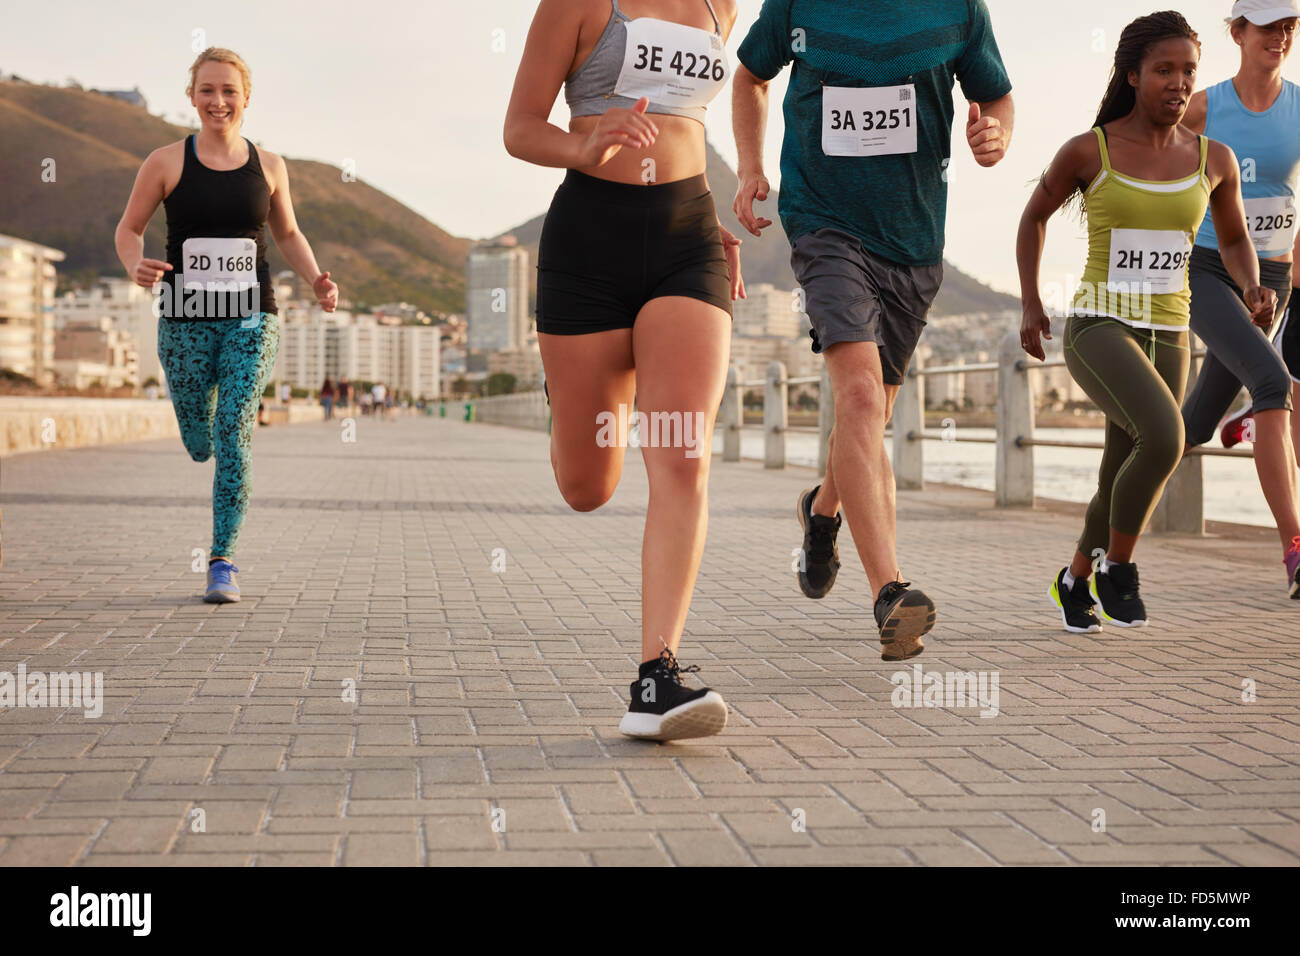 Diverse group of runners competing in a race. Athletes sprinting on a street along the sea. - Stock Image